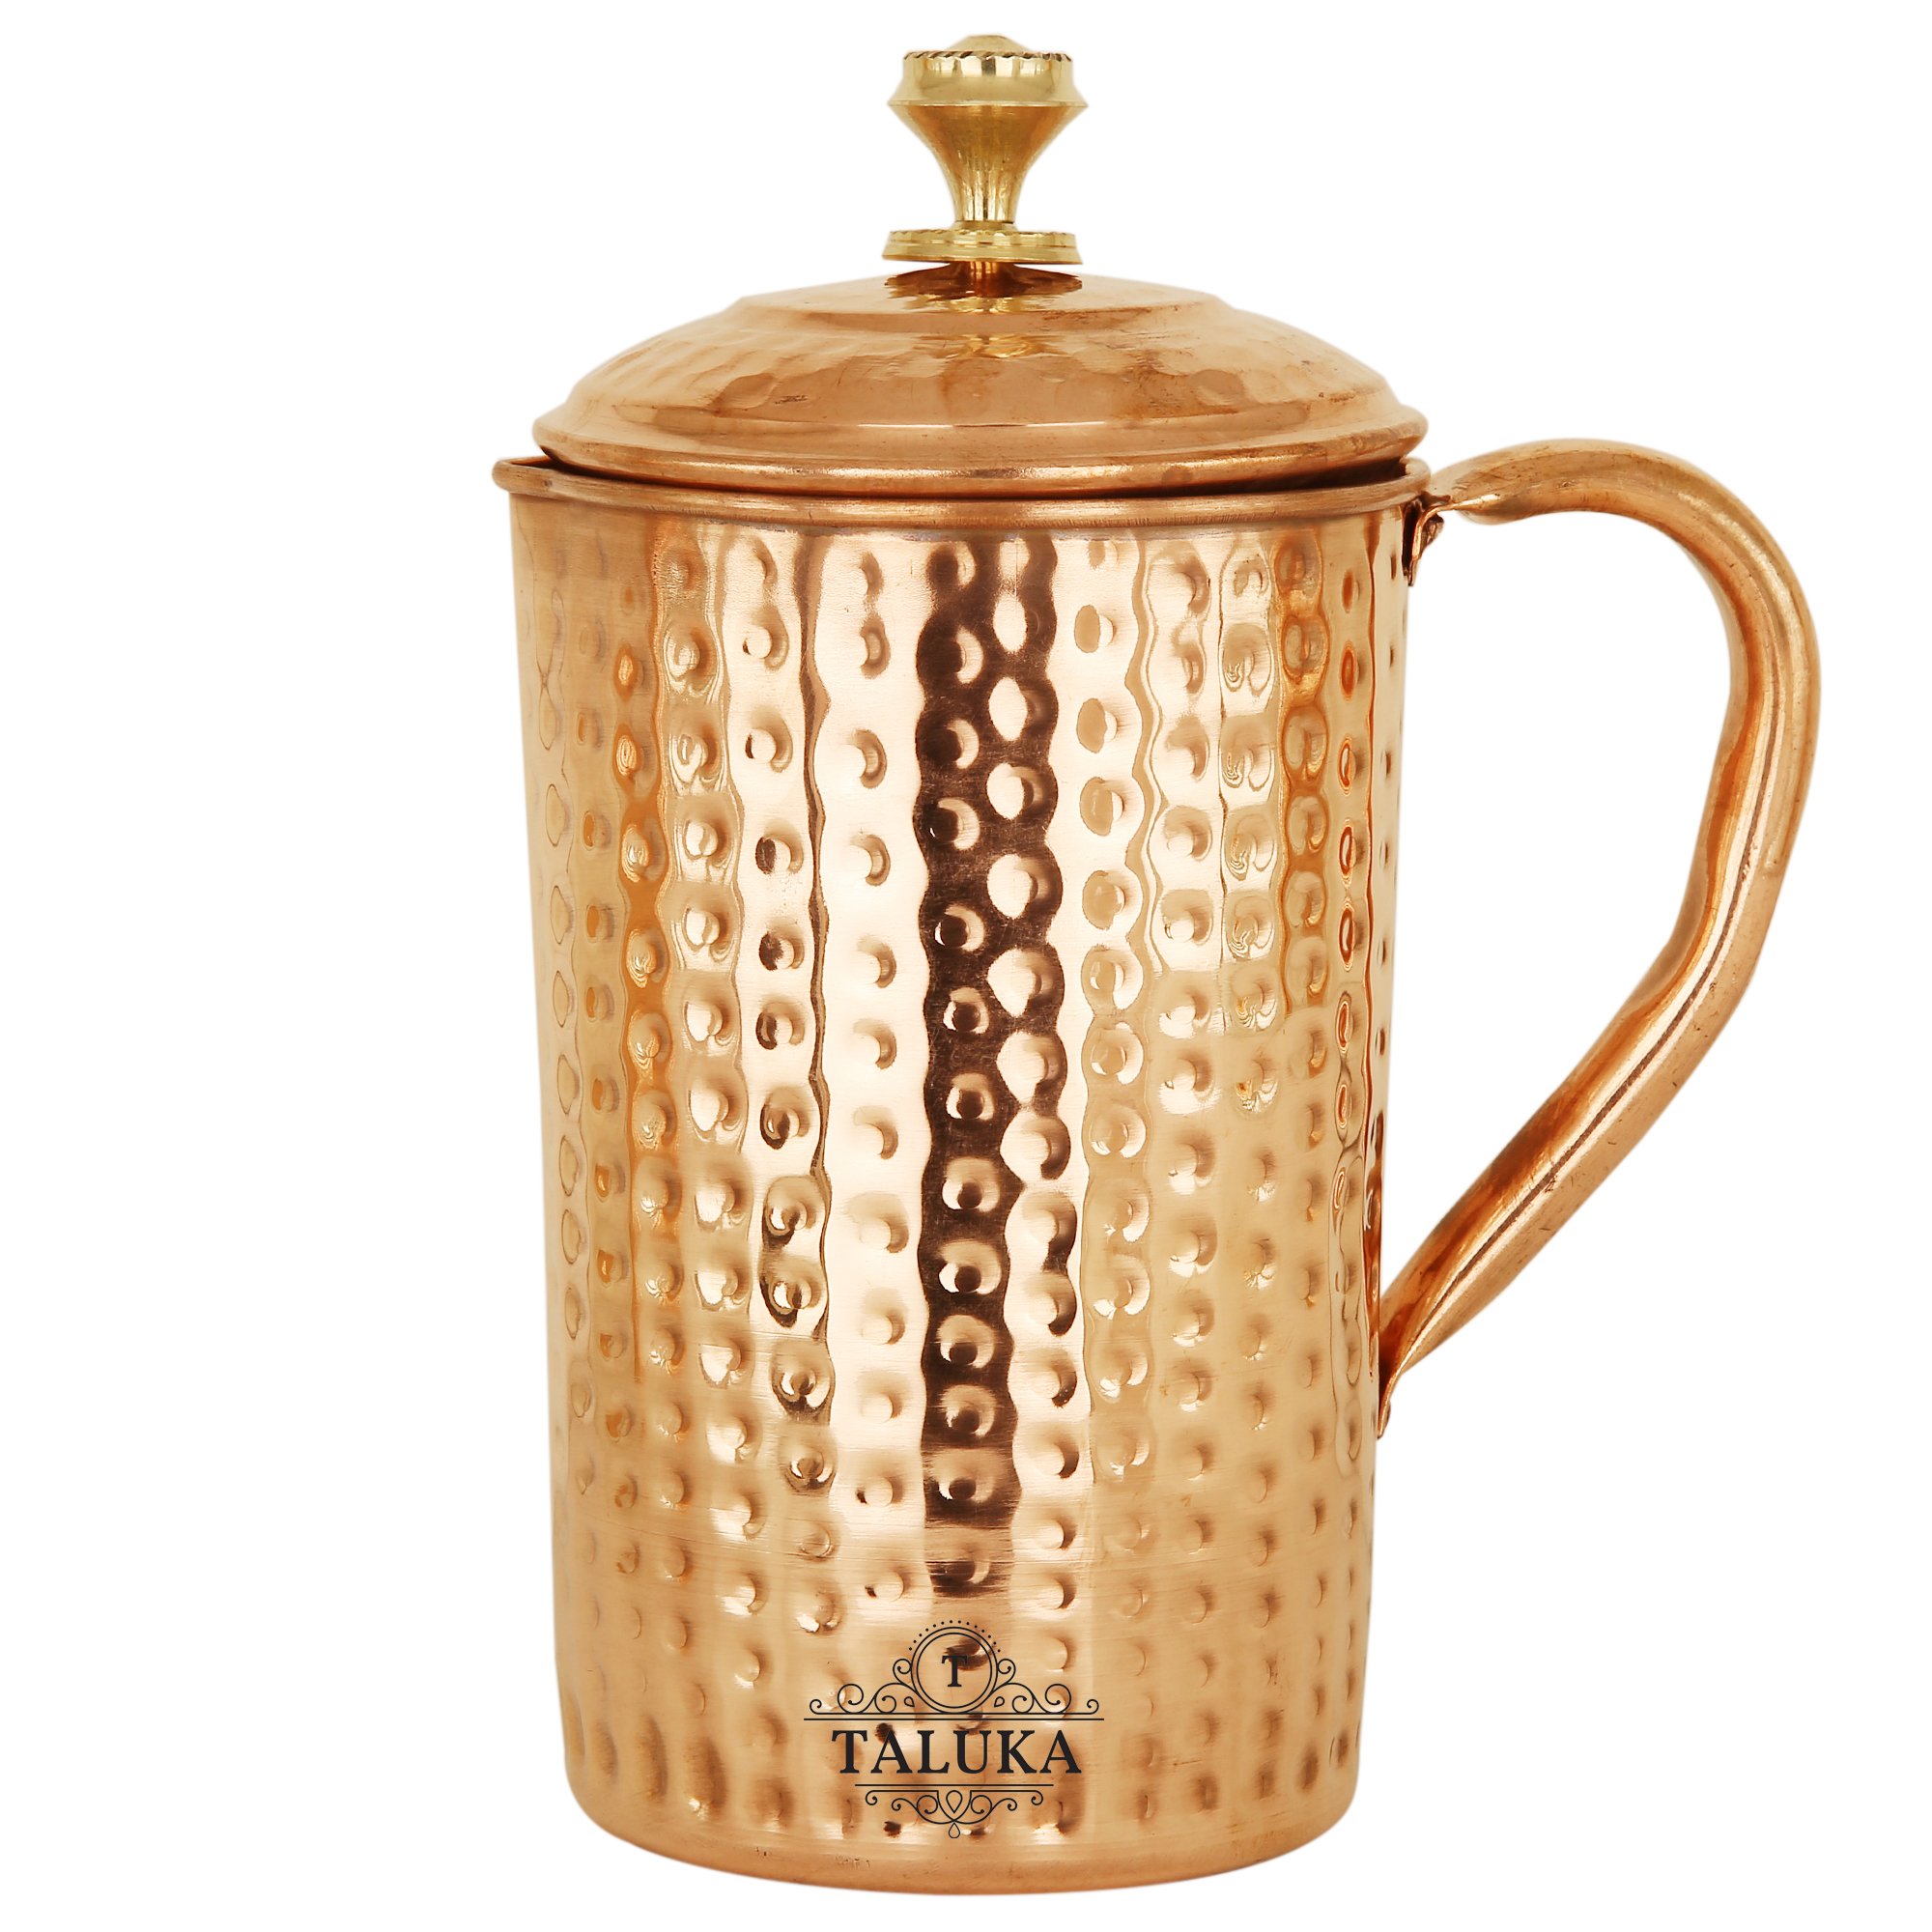 Handmade Hammered Copper Jug Water Pitcher Drinking  Capacity: 1500 ML